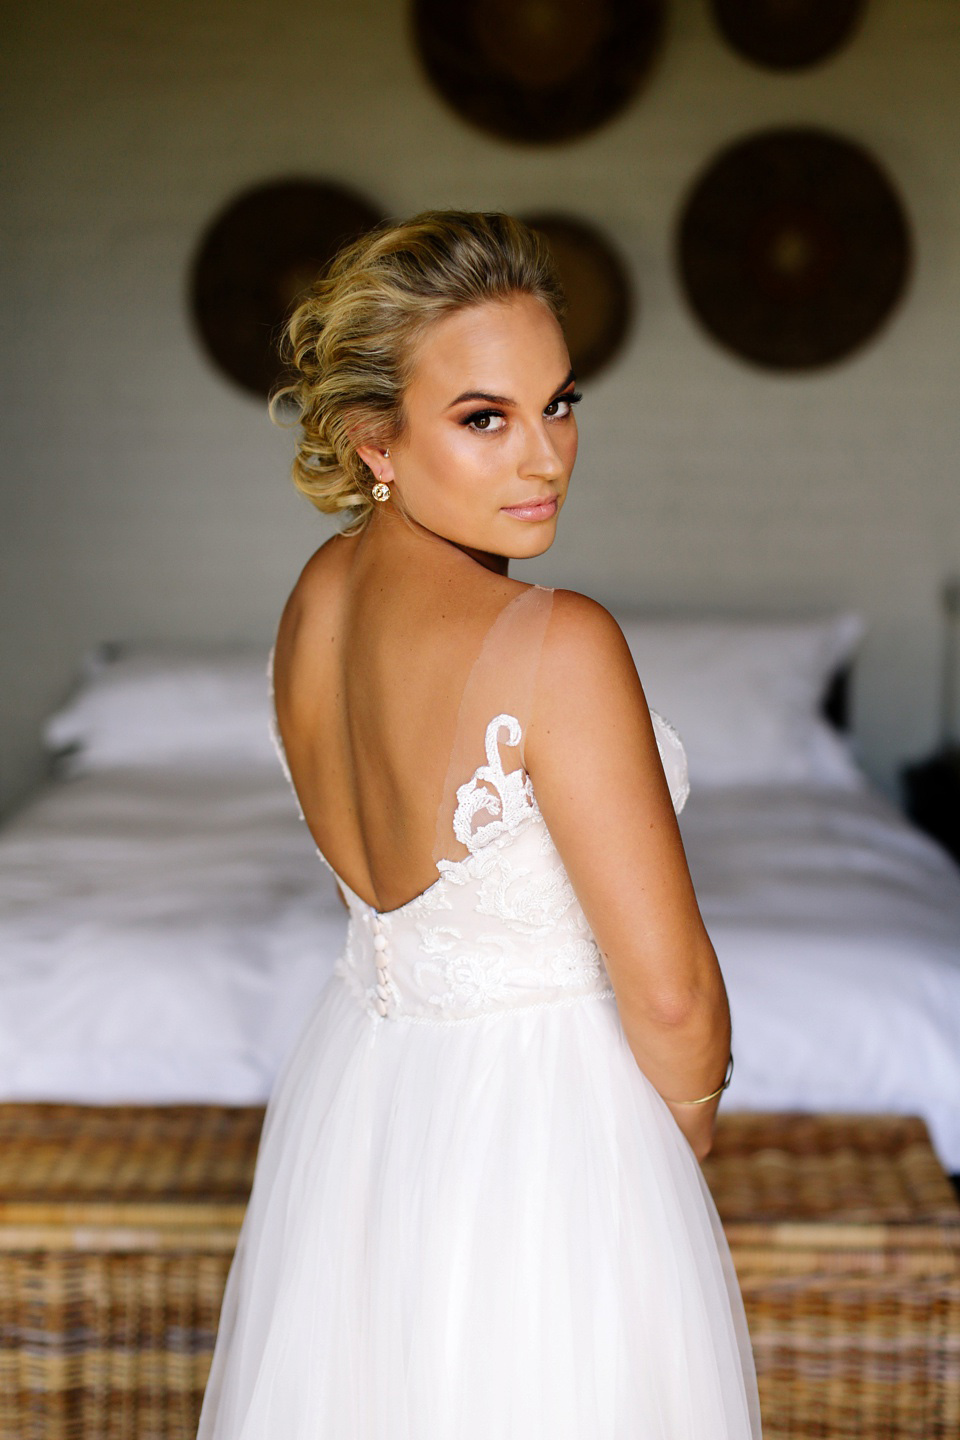 destination-southafrica-germany-weddings-germany_wedding_in_south_africa10031